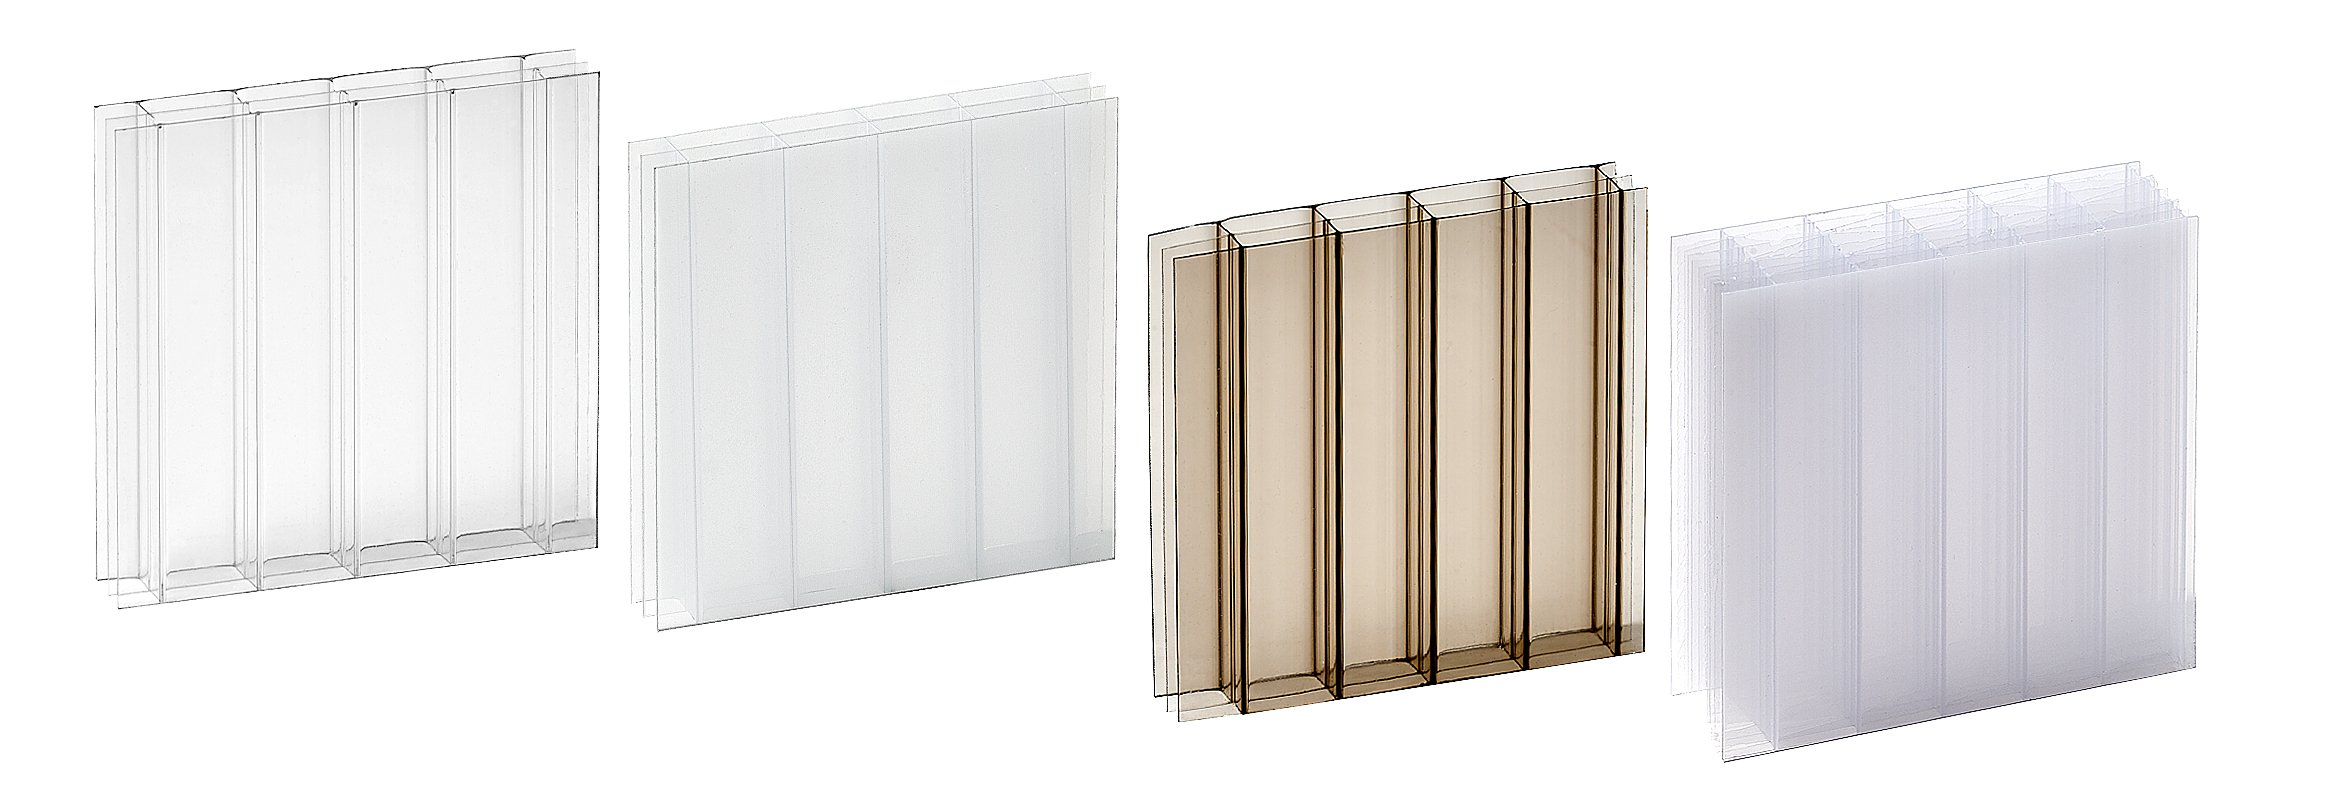 Multiwall Polycarbonate Samples